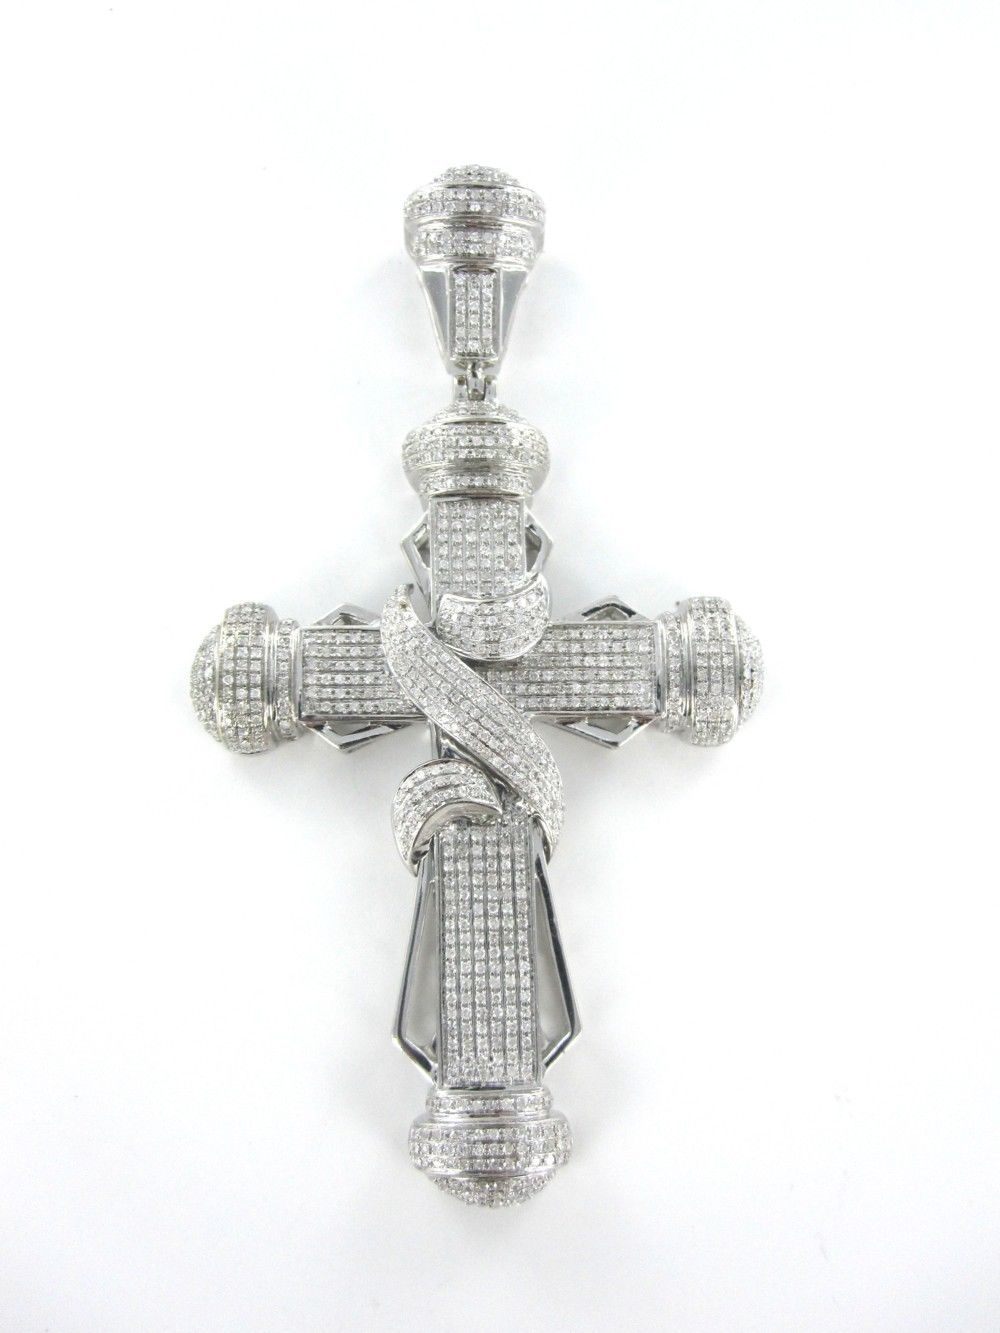 10KT WHITE GOLD PENDANT CHARM 772 DIAMOND BIG CROSS 15.3DWT FAITH SPIRITUAL GOD